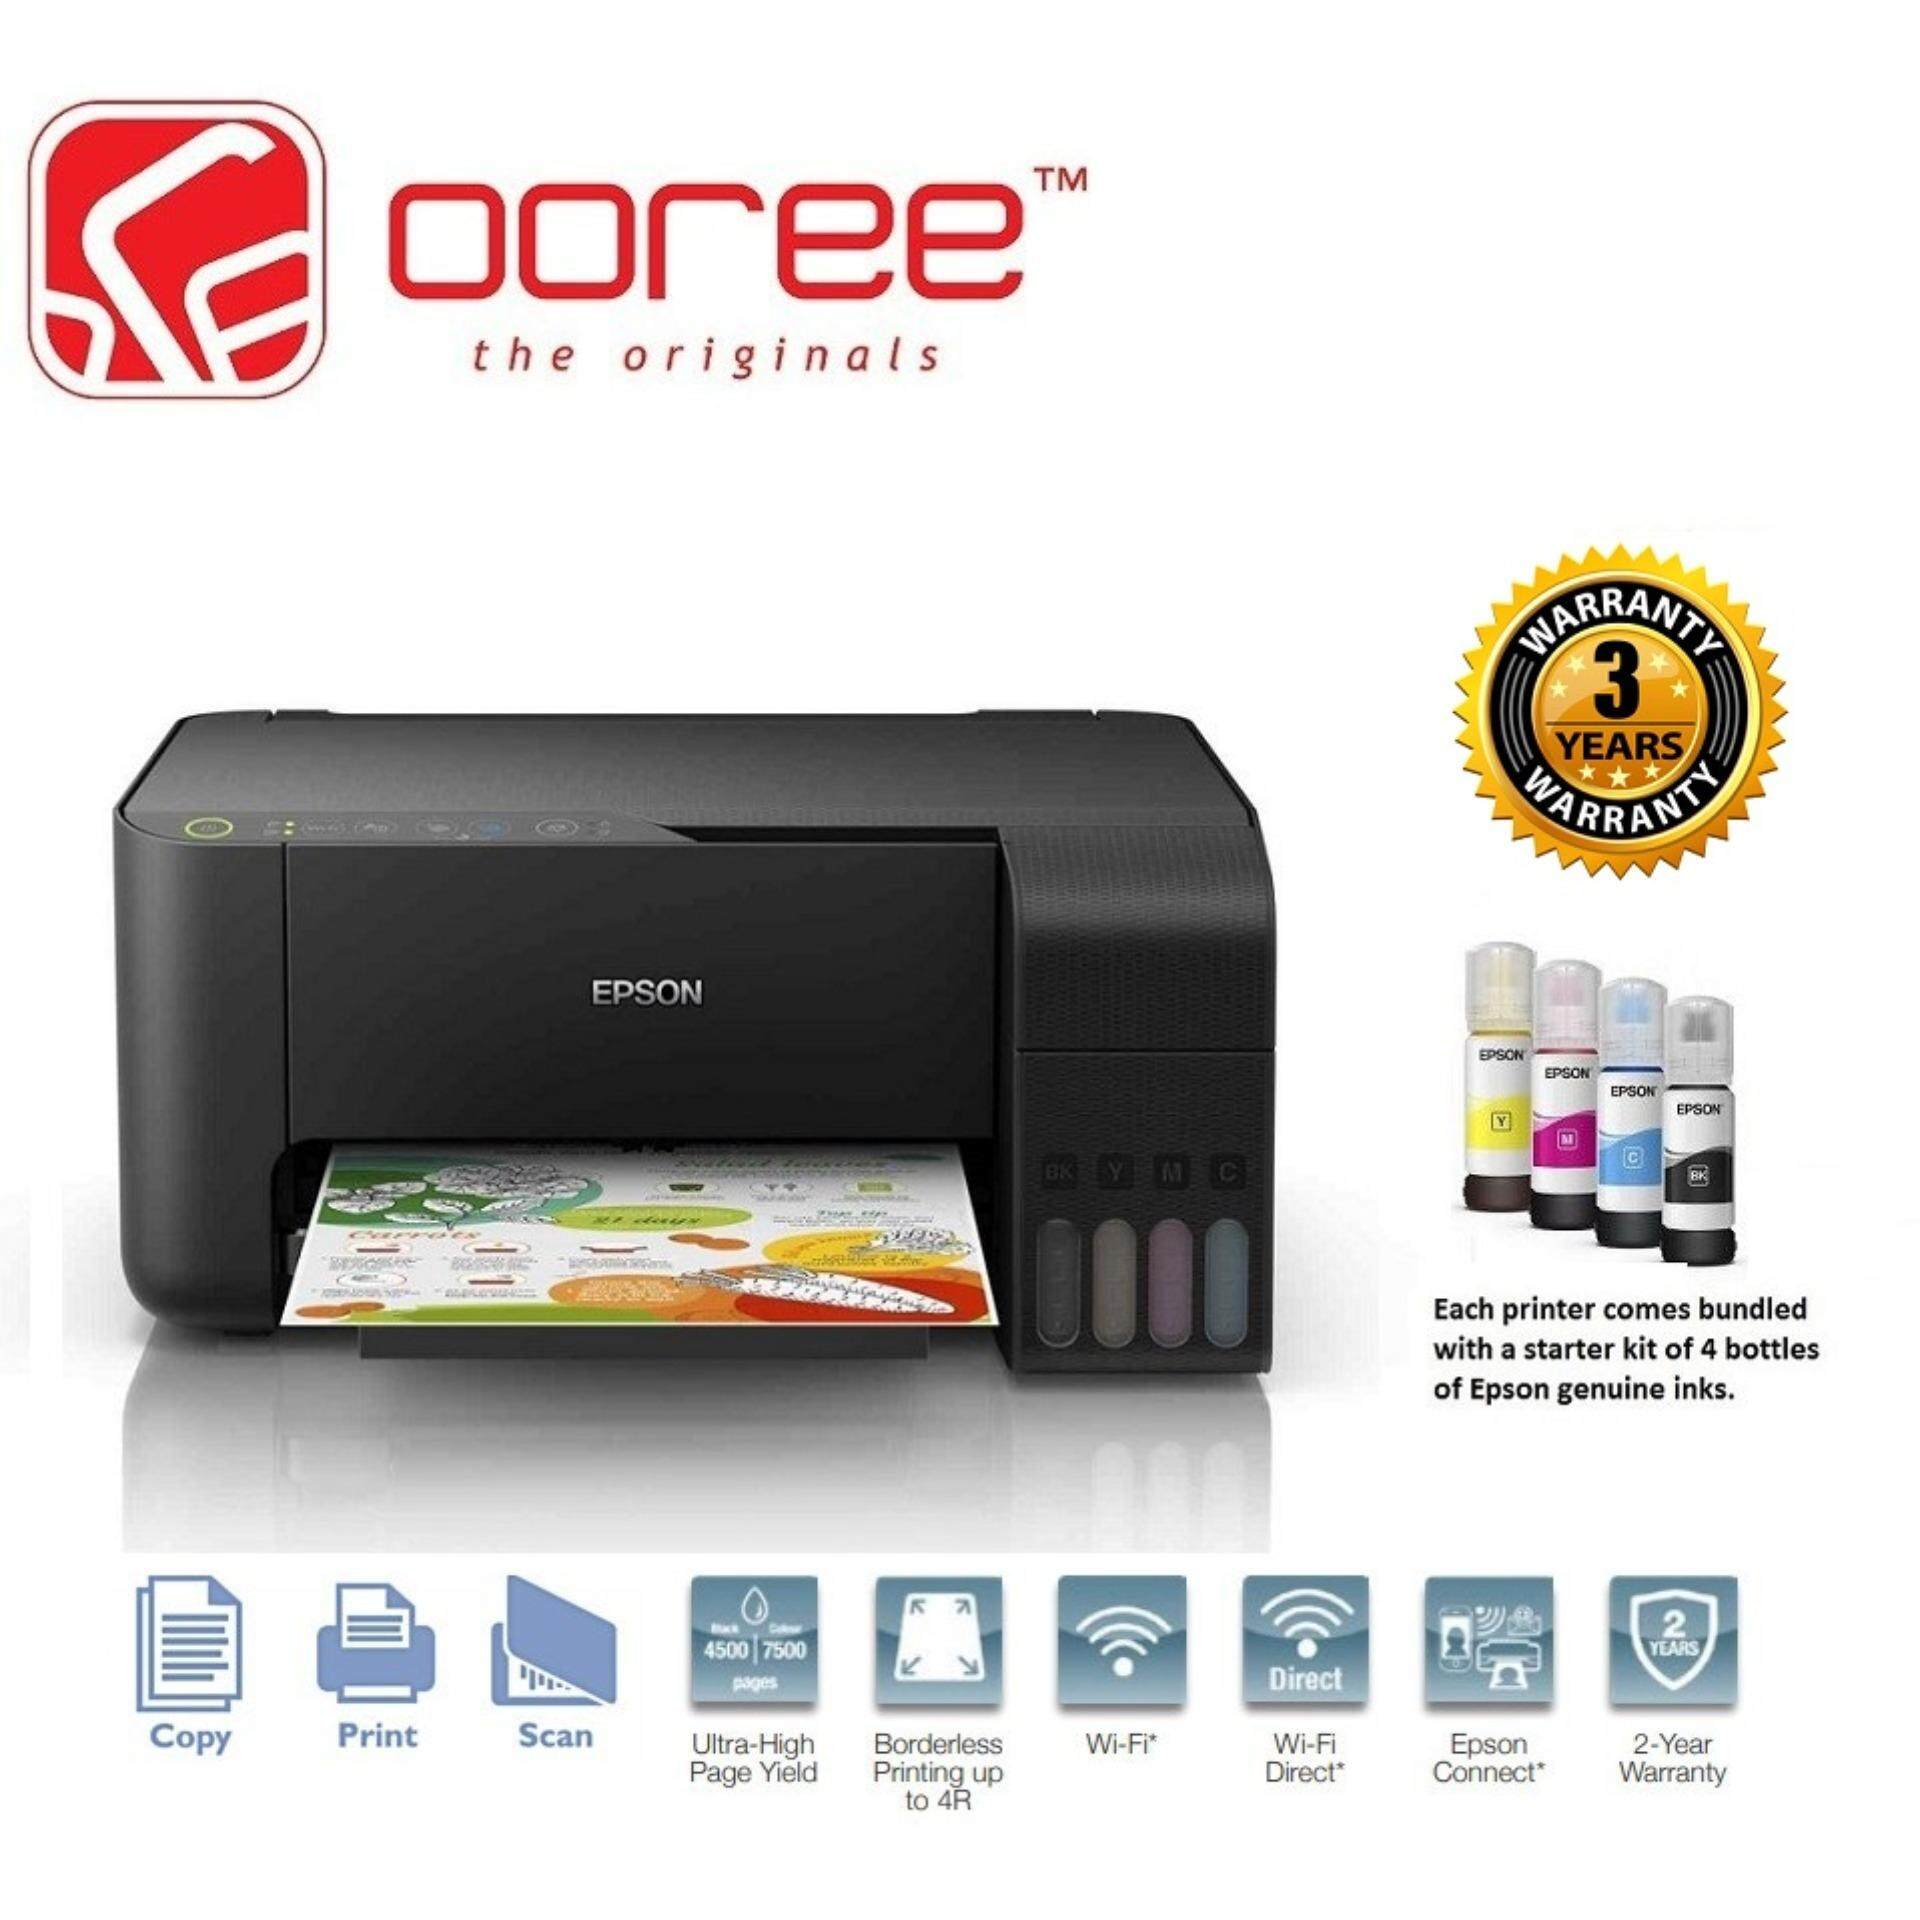 EPSON ECOTANK L3150 4 IN 1 PRINT SCAN COPY WIFI REFILLABLE INK TANK  PRINTER, ALL IN ONE MULTI FUNCTION COLOUR PRINTER, ANTI UV INK, WITH 1 SET